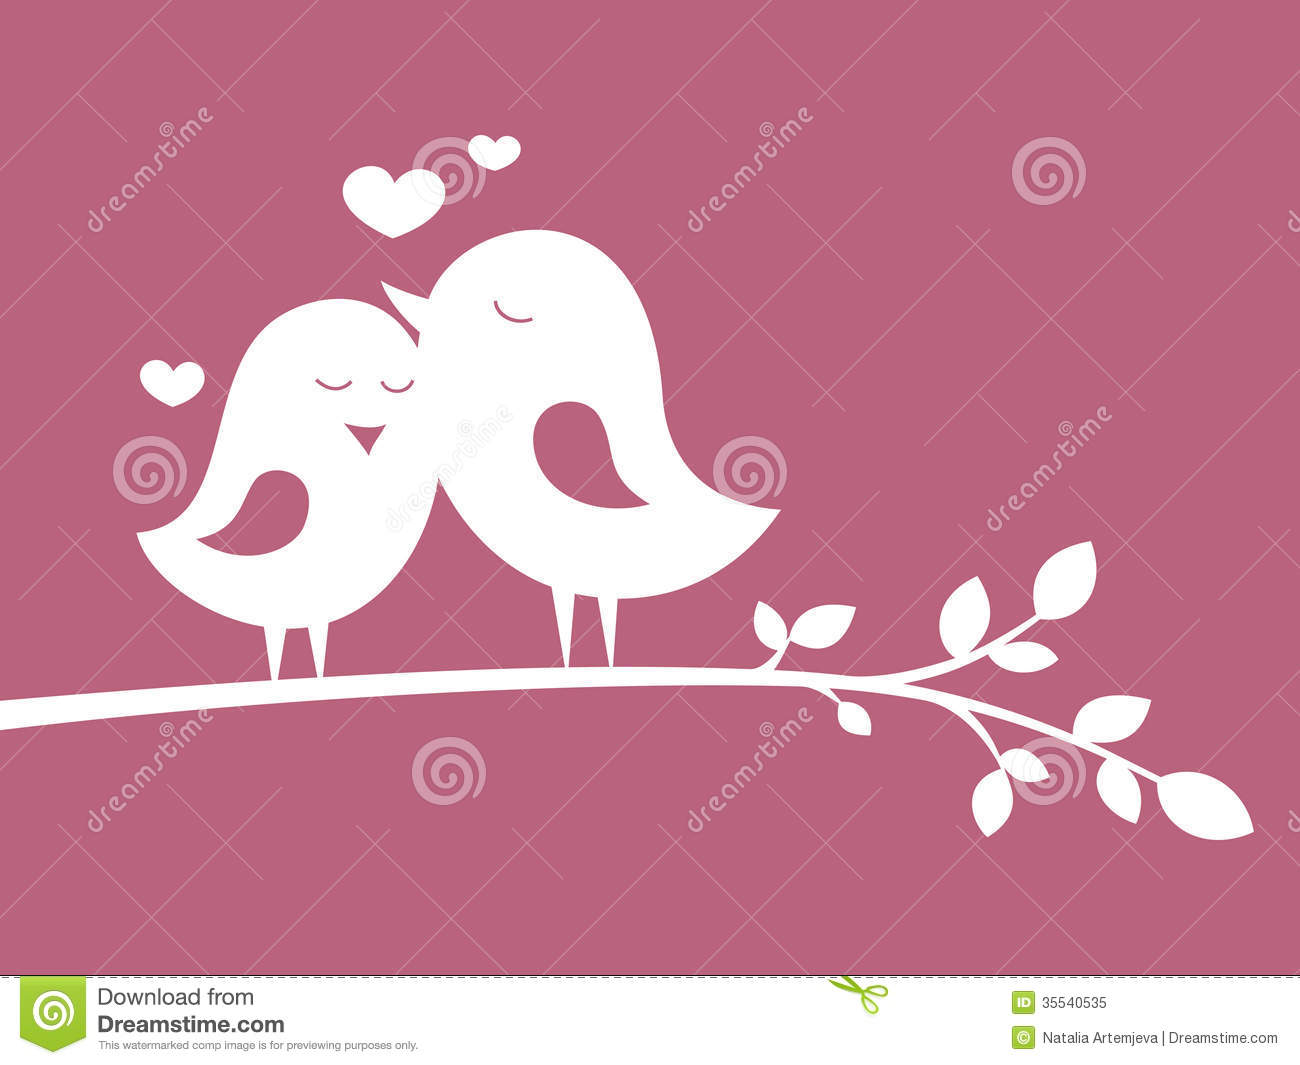 Romantic Boy And Girl Wallpapers Birds In Love 1 Royalty Free Stock Photo Image 35540535